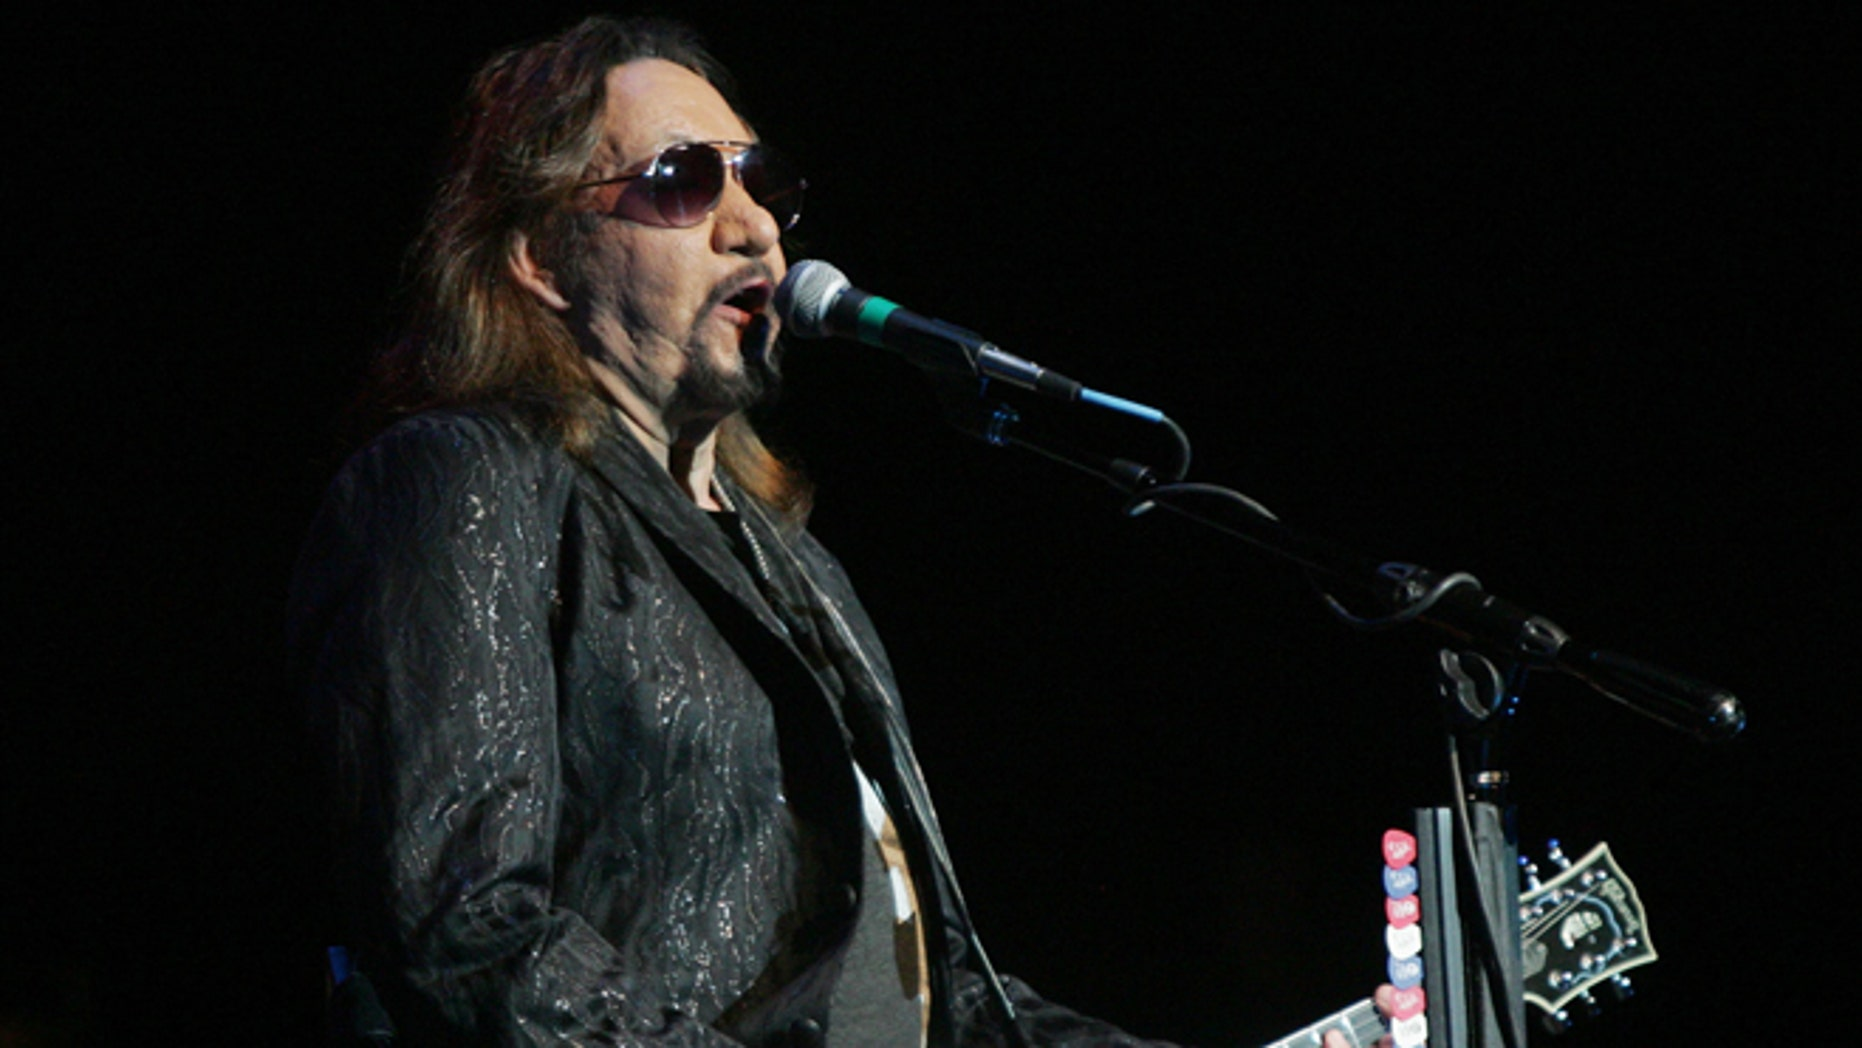 April 15, 2016. Ace Frehley, singer, musician and former member of KISS, preforms at the FM Kirby center in Wilkes Barre, Pa.